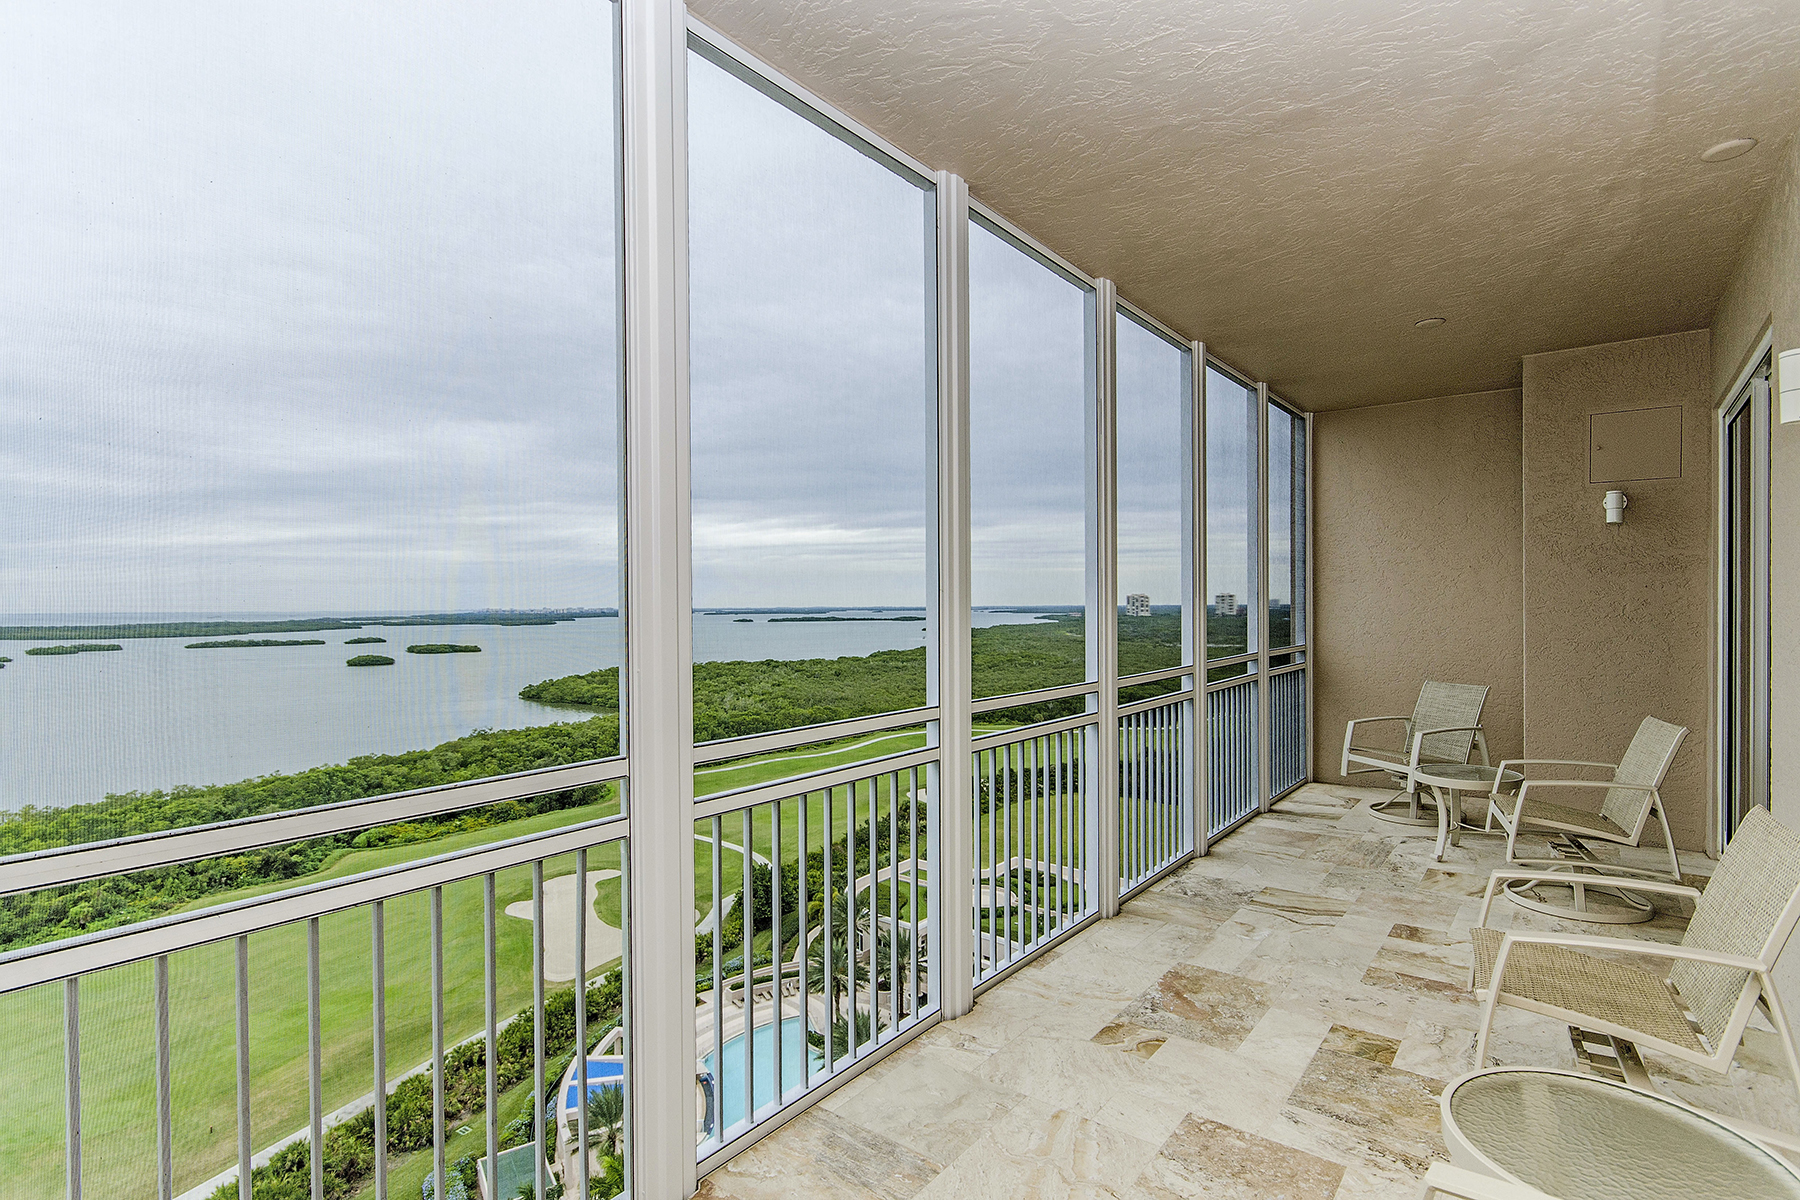 Additional photo for property listing at BONITA BAY - ESPERIA SOUTH 4951 Bonita Bay Blvd , 1602 Bonita Springs, Florida 34134 United States